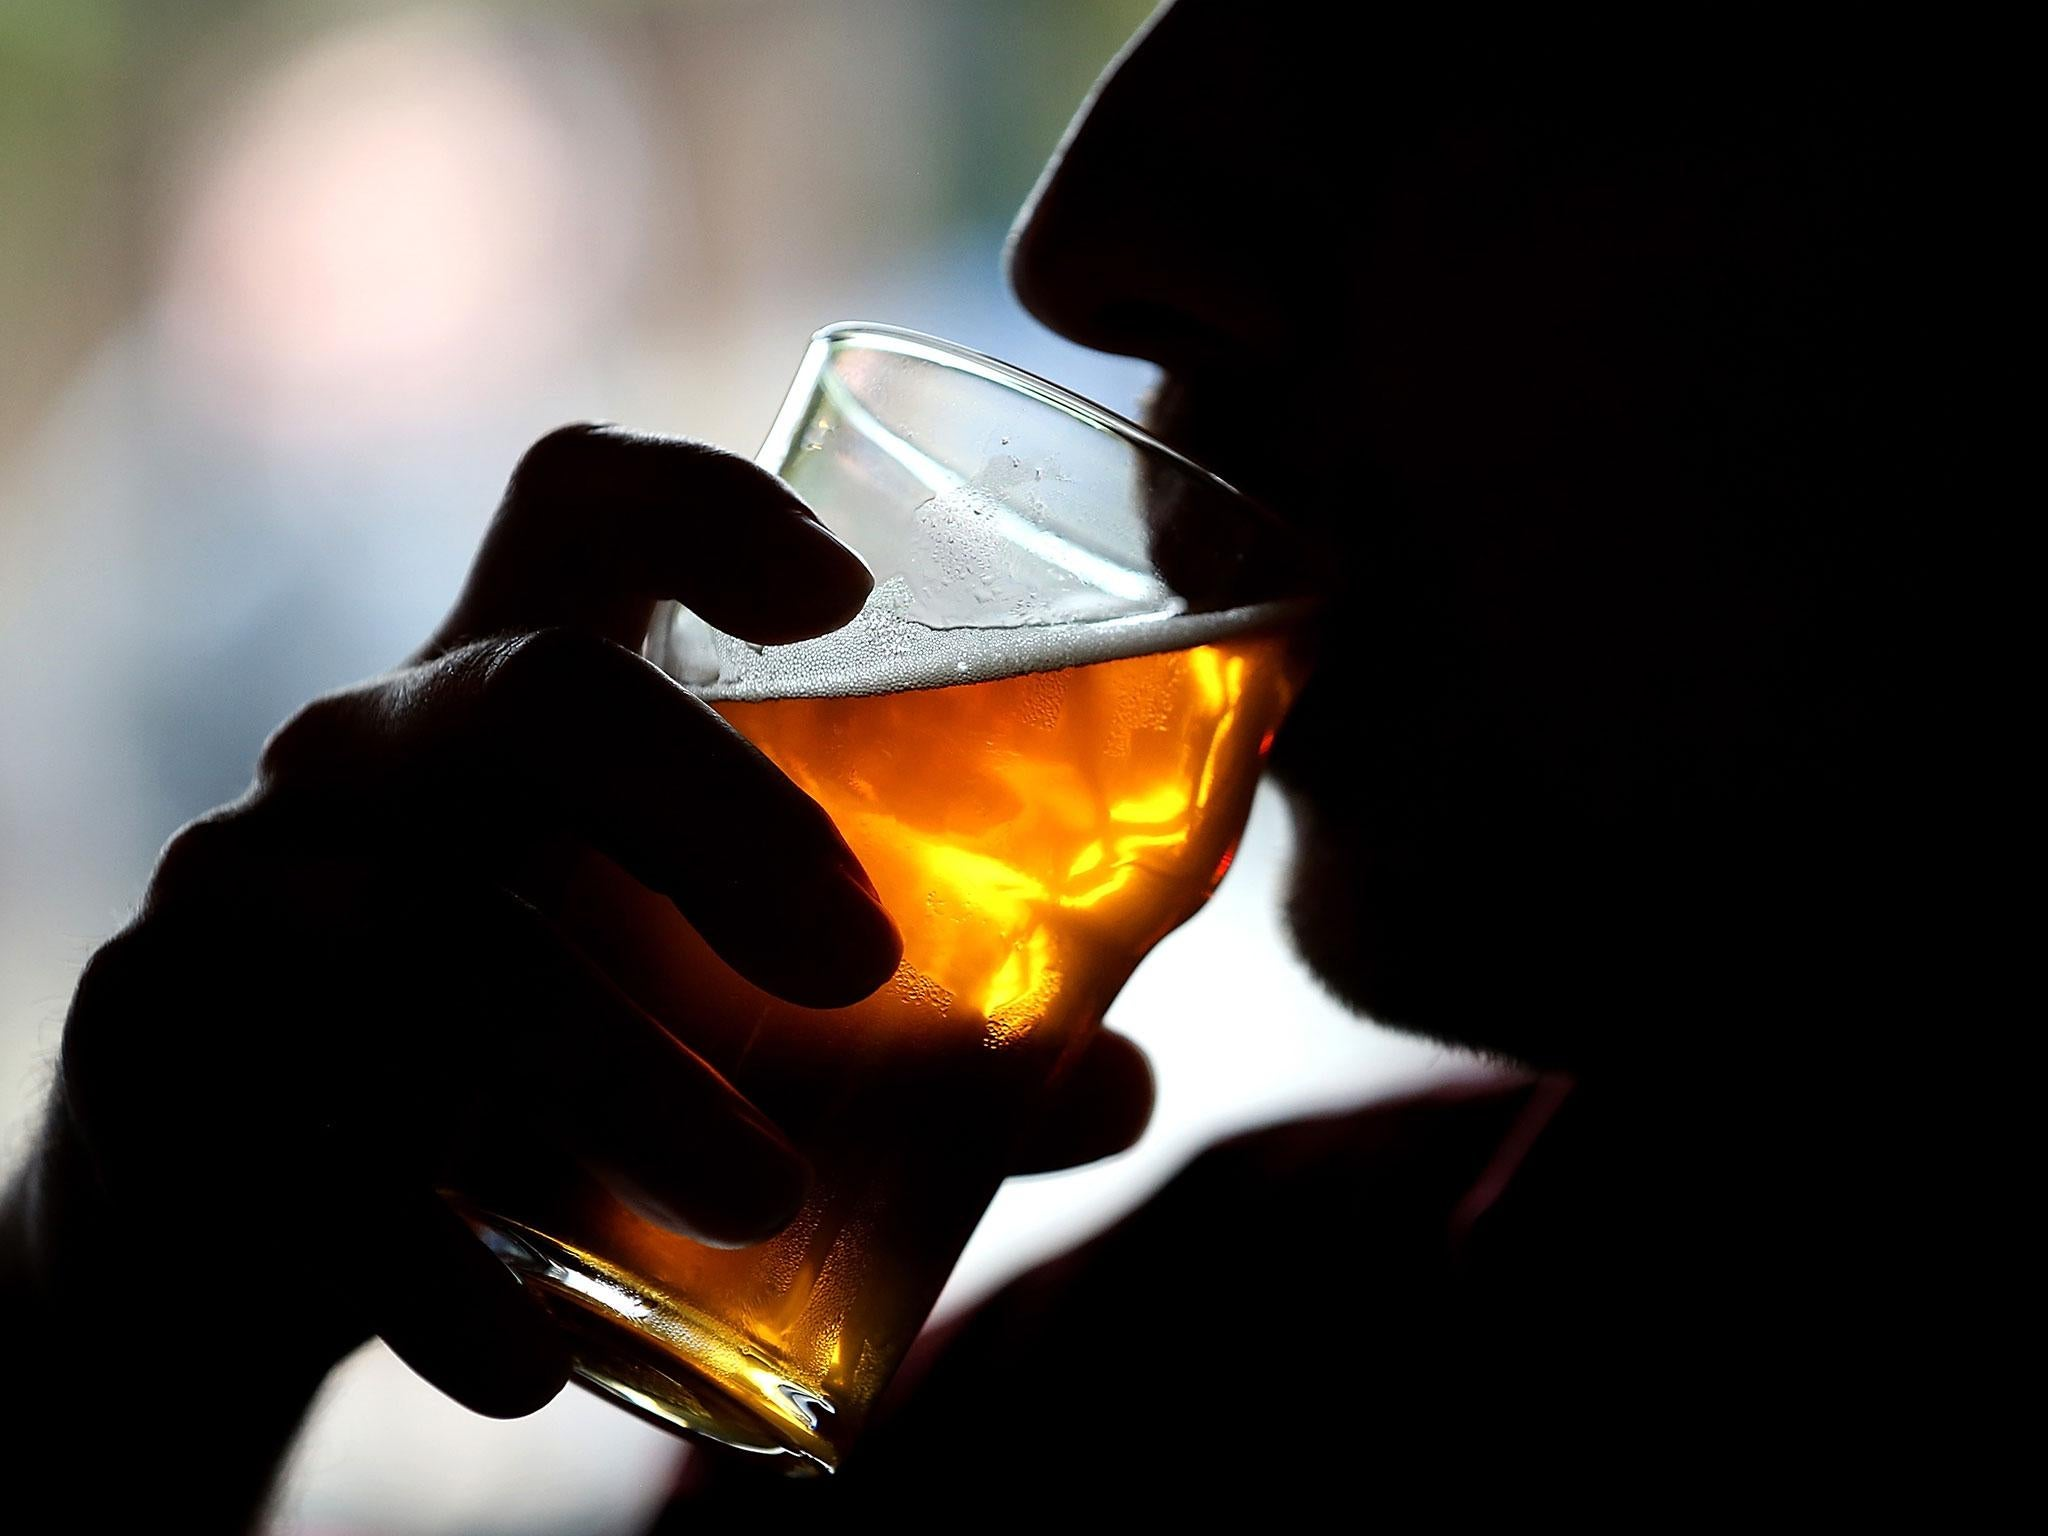 NHS: Alcohol-related hospital admissions hit record high after addiction support services slashed